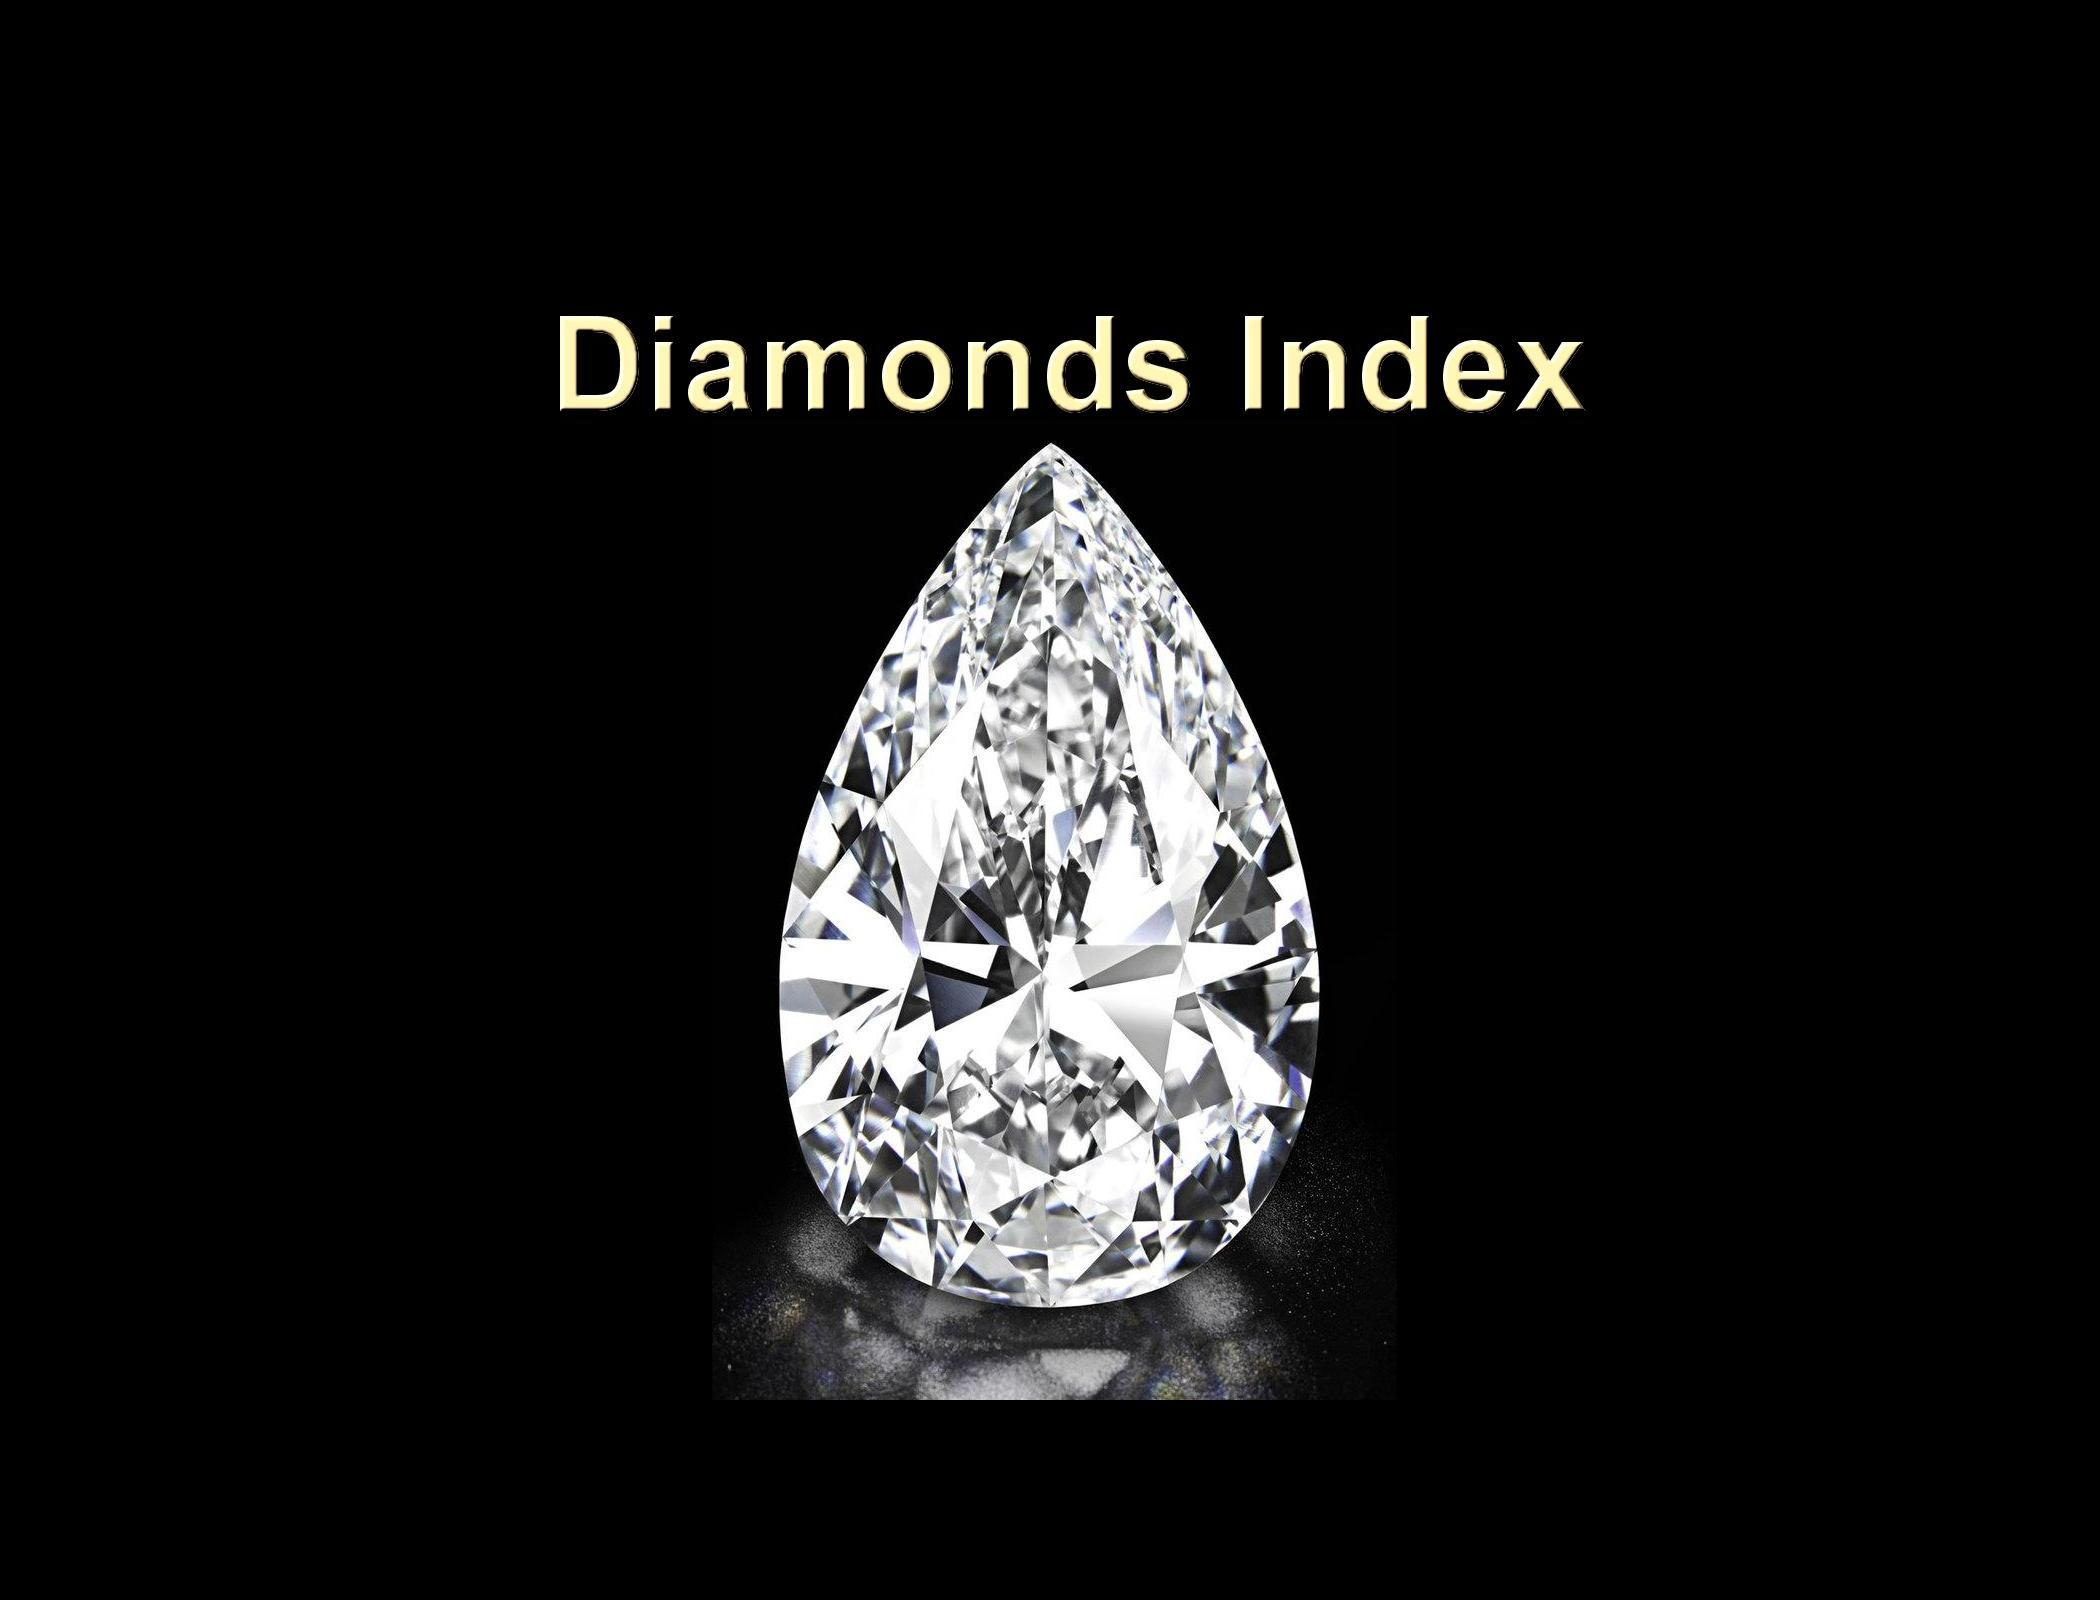 Diamonds Index